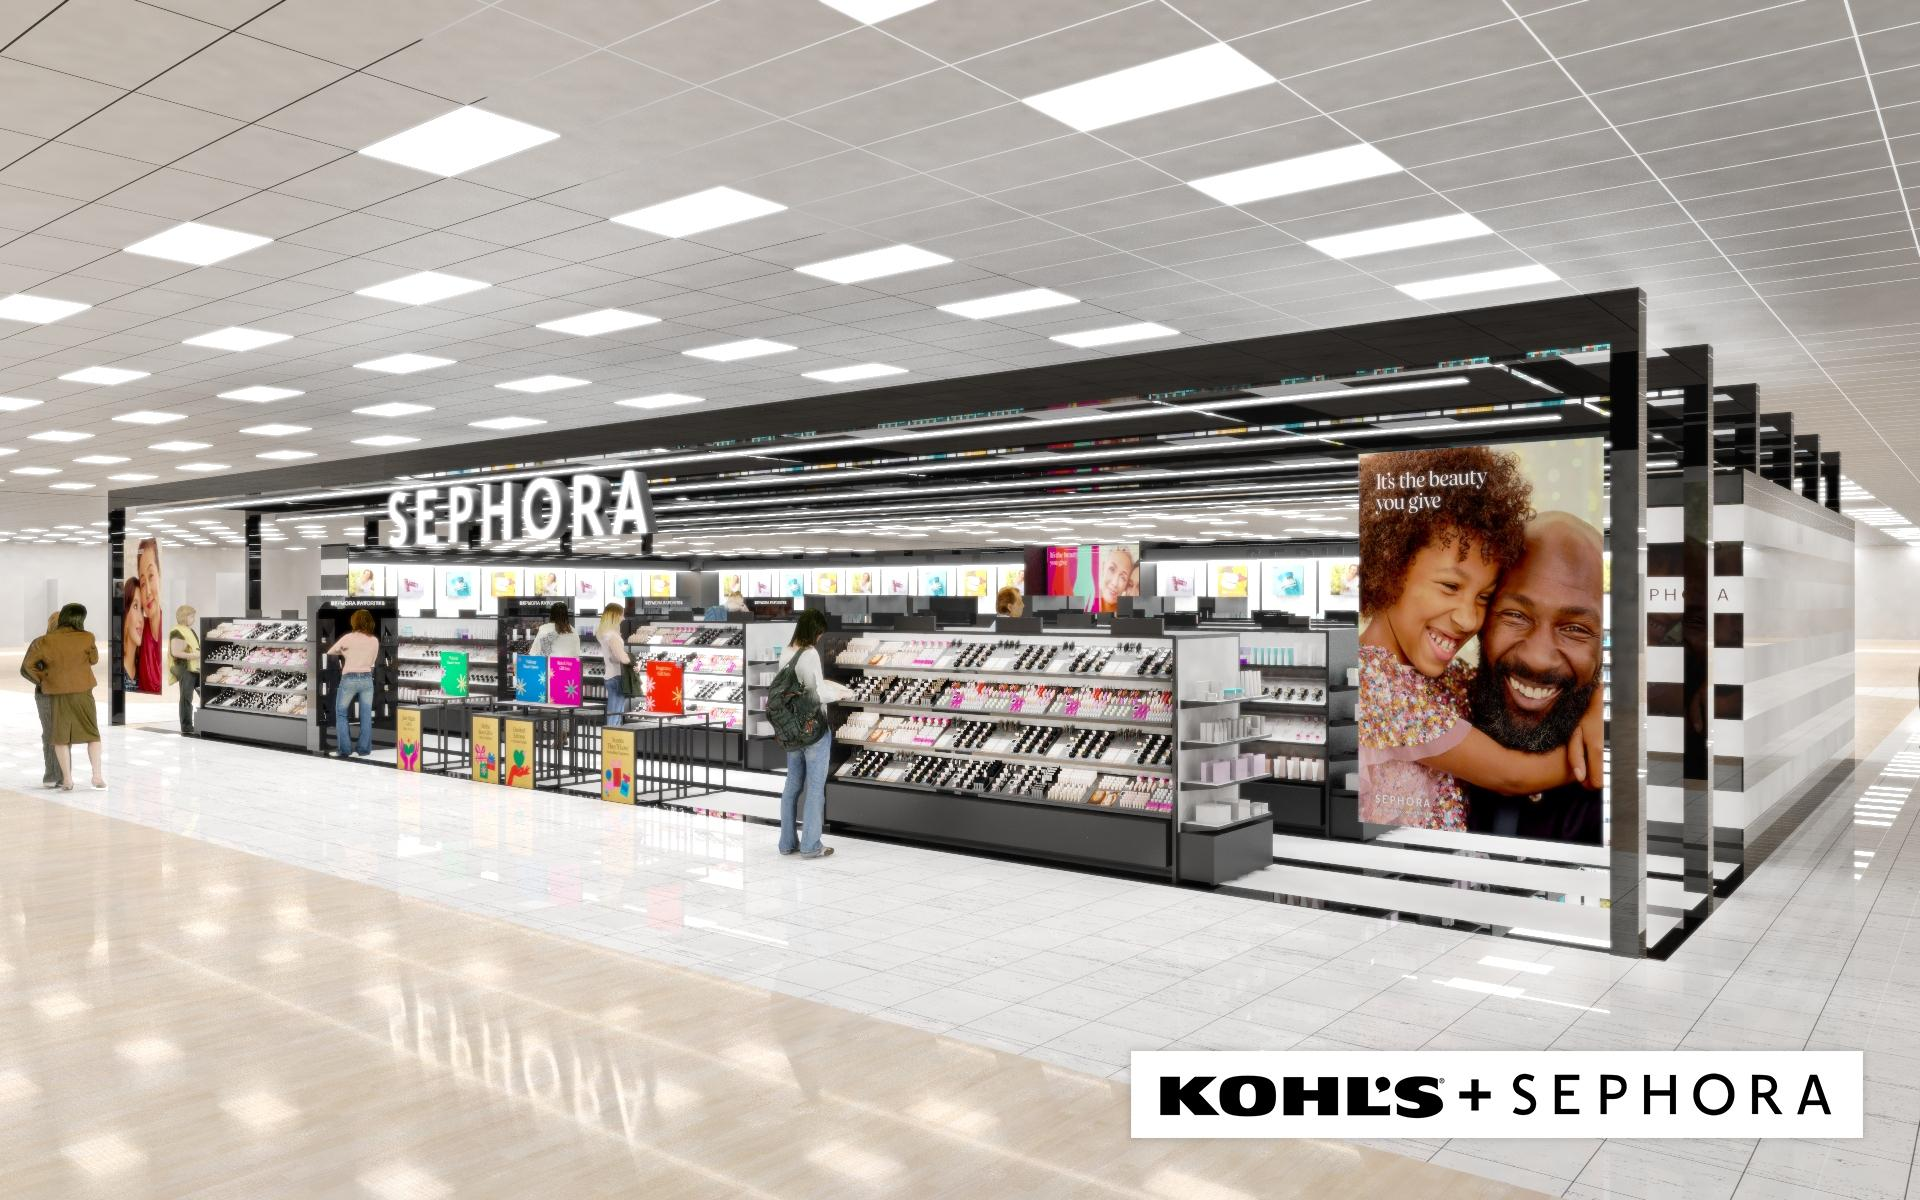 Sephora_at_Kohls_-_Interior_-_Logo